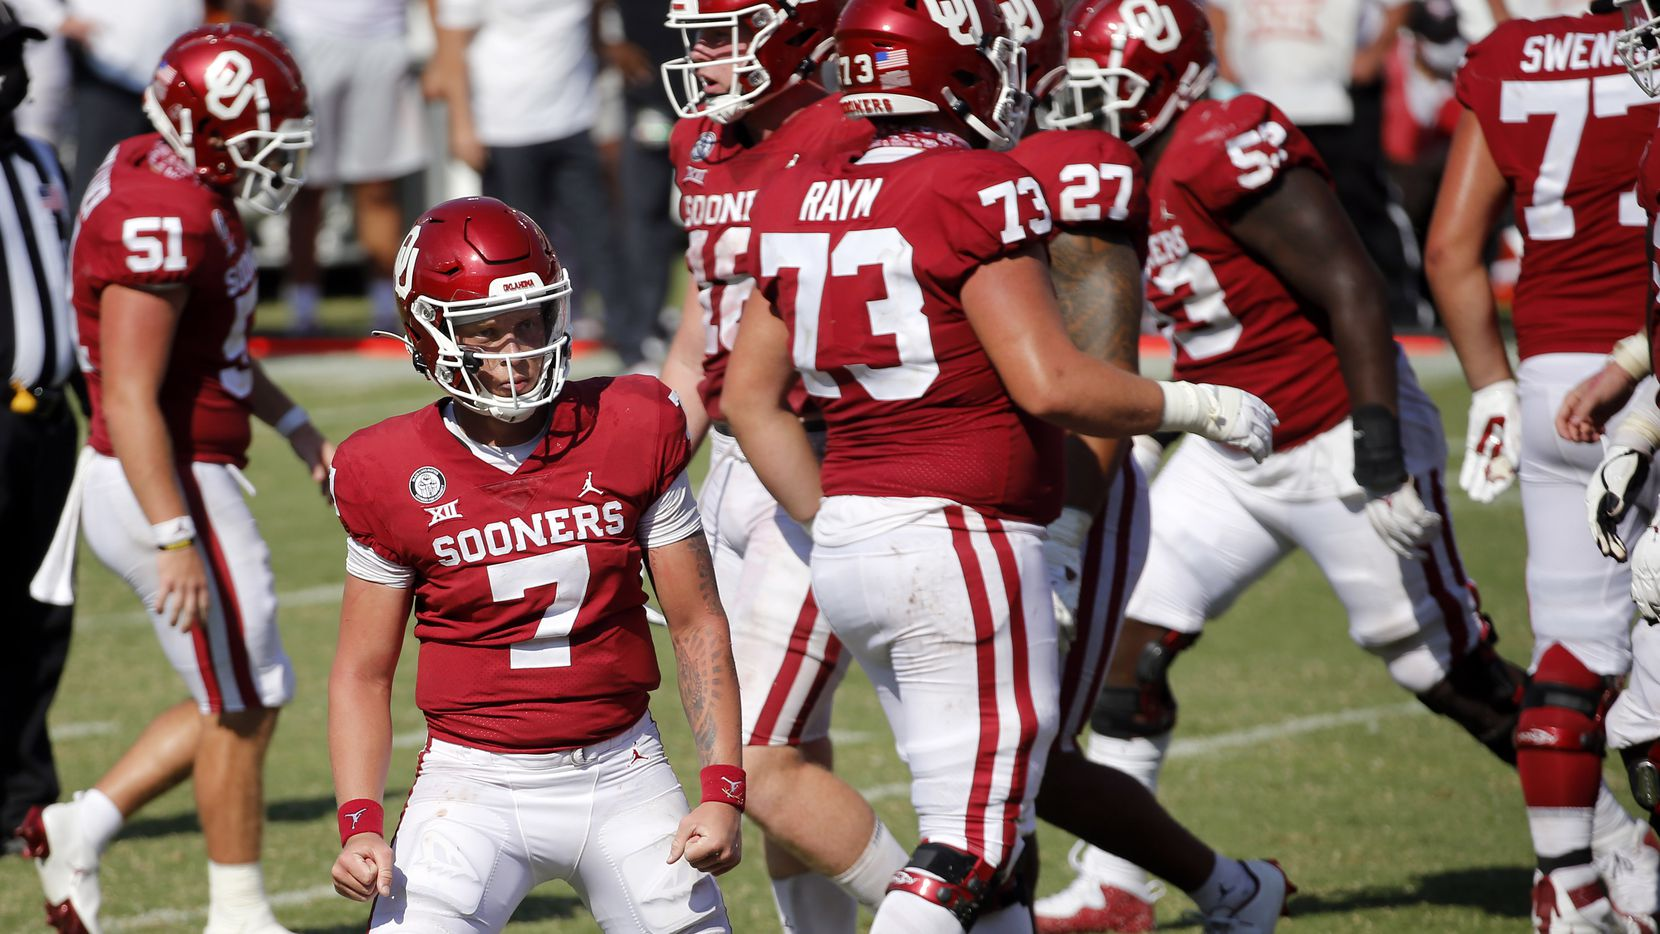 Oklahoma Sooners quarterback Spencer Rattler (7) gives a look to the student sedition after scoring a touchdown in the second overtime against the Texas Longhorns in the Red River Rivalry at the Cotton Bowl in Dallas, Saturday, October 10, 2020. Oklahoma won in quadruple overtime, 53-45.